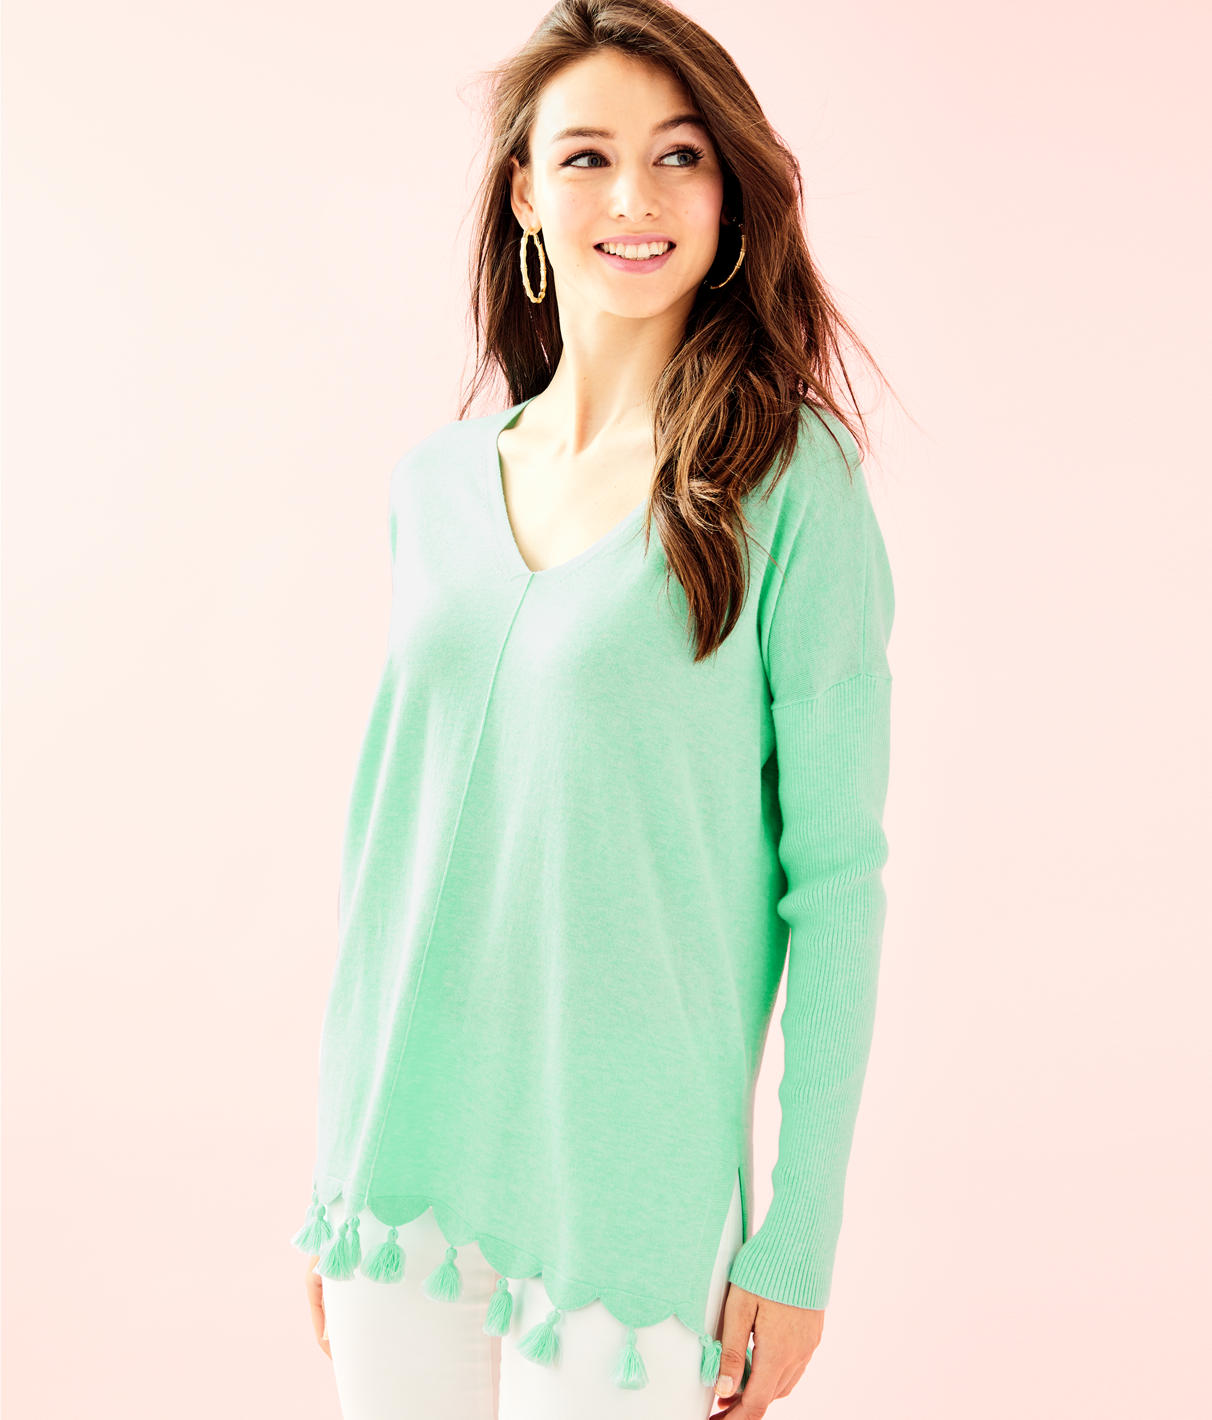 Lilly Pulitzer Martine Sweater